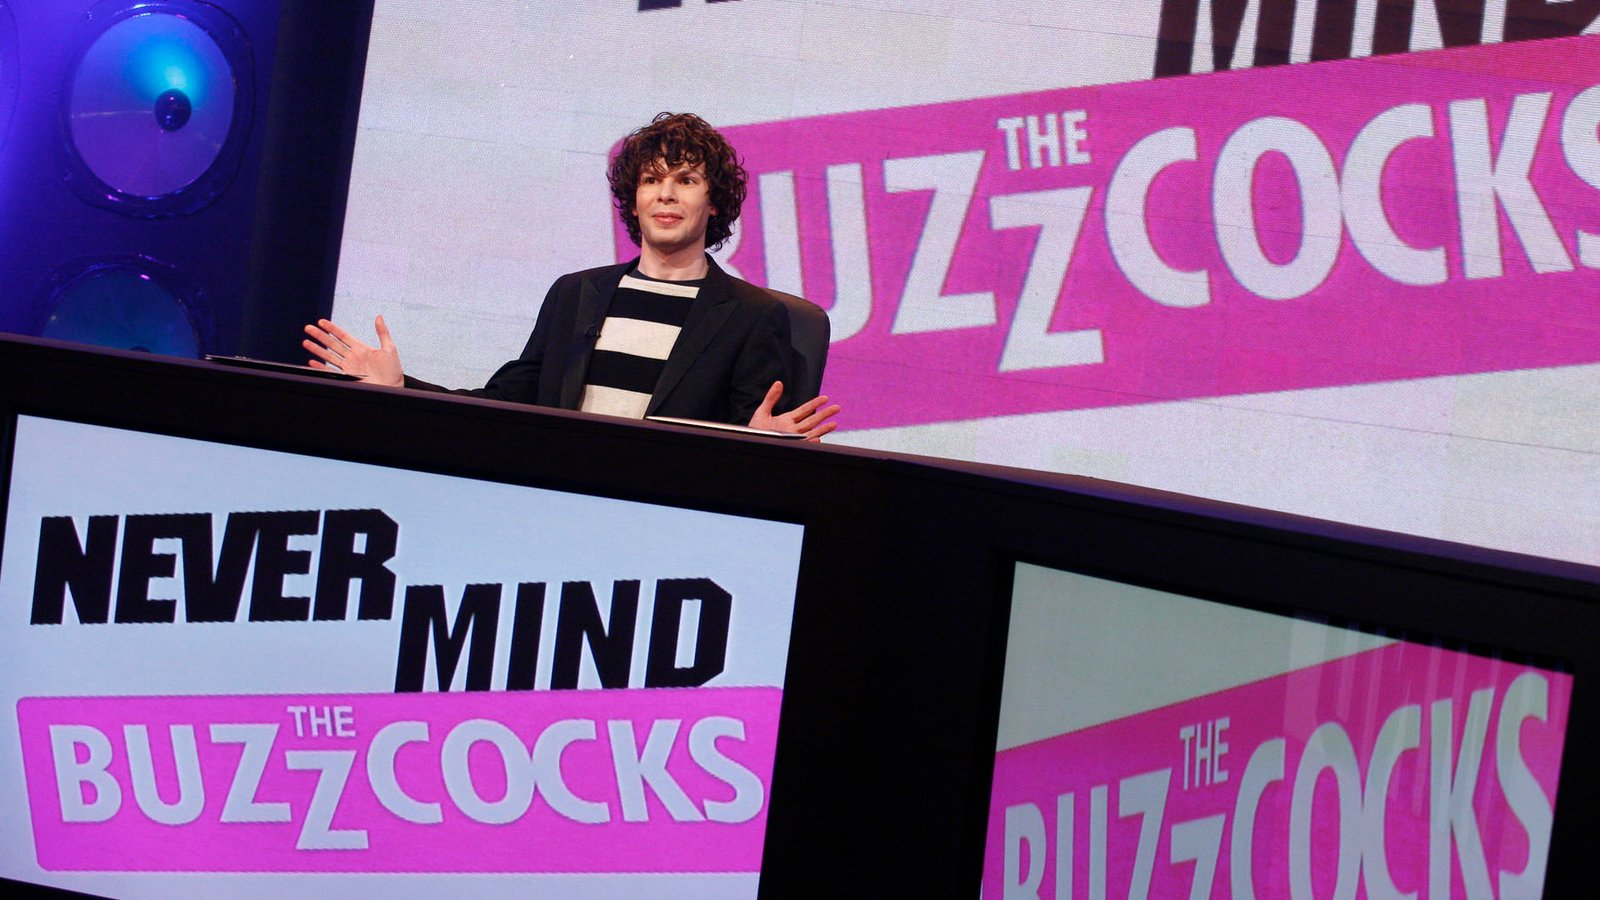 Simon Amstell Never Mind The Buzzcocks